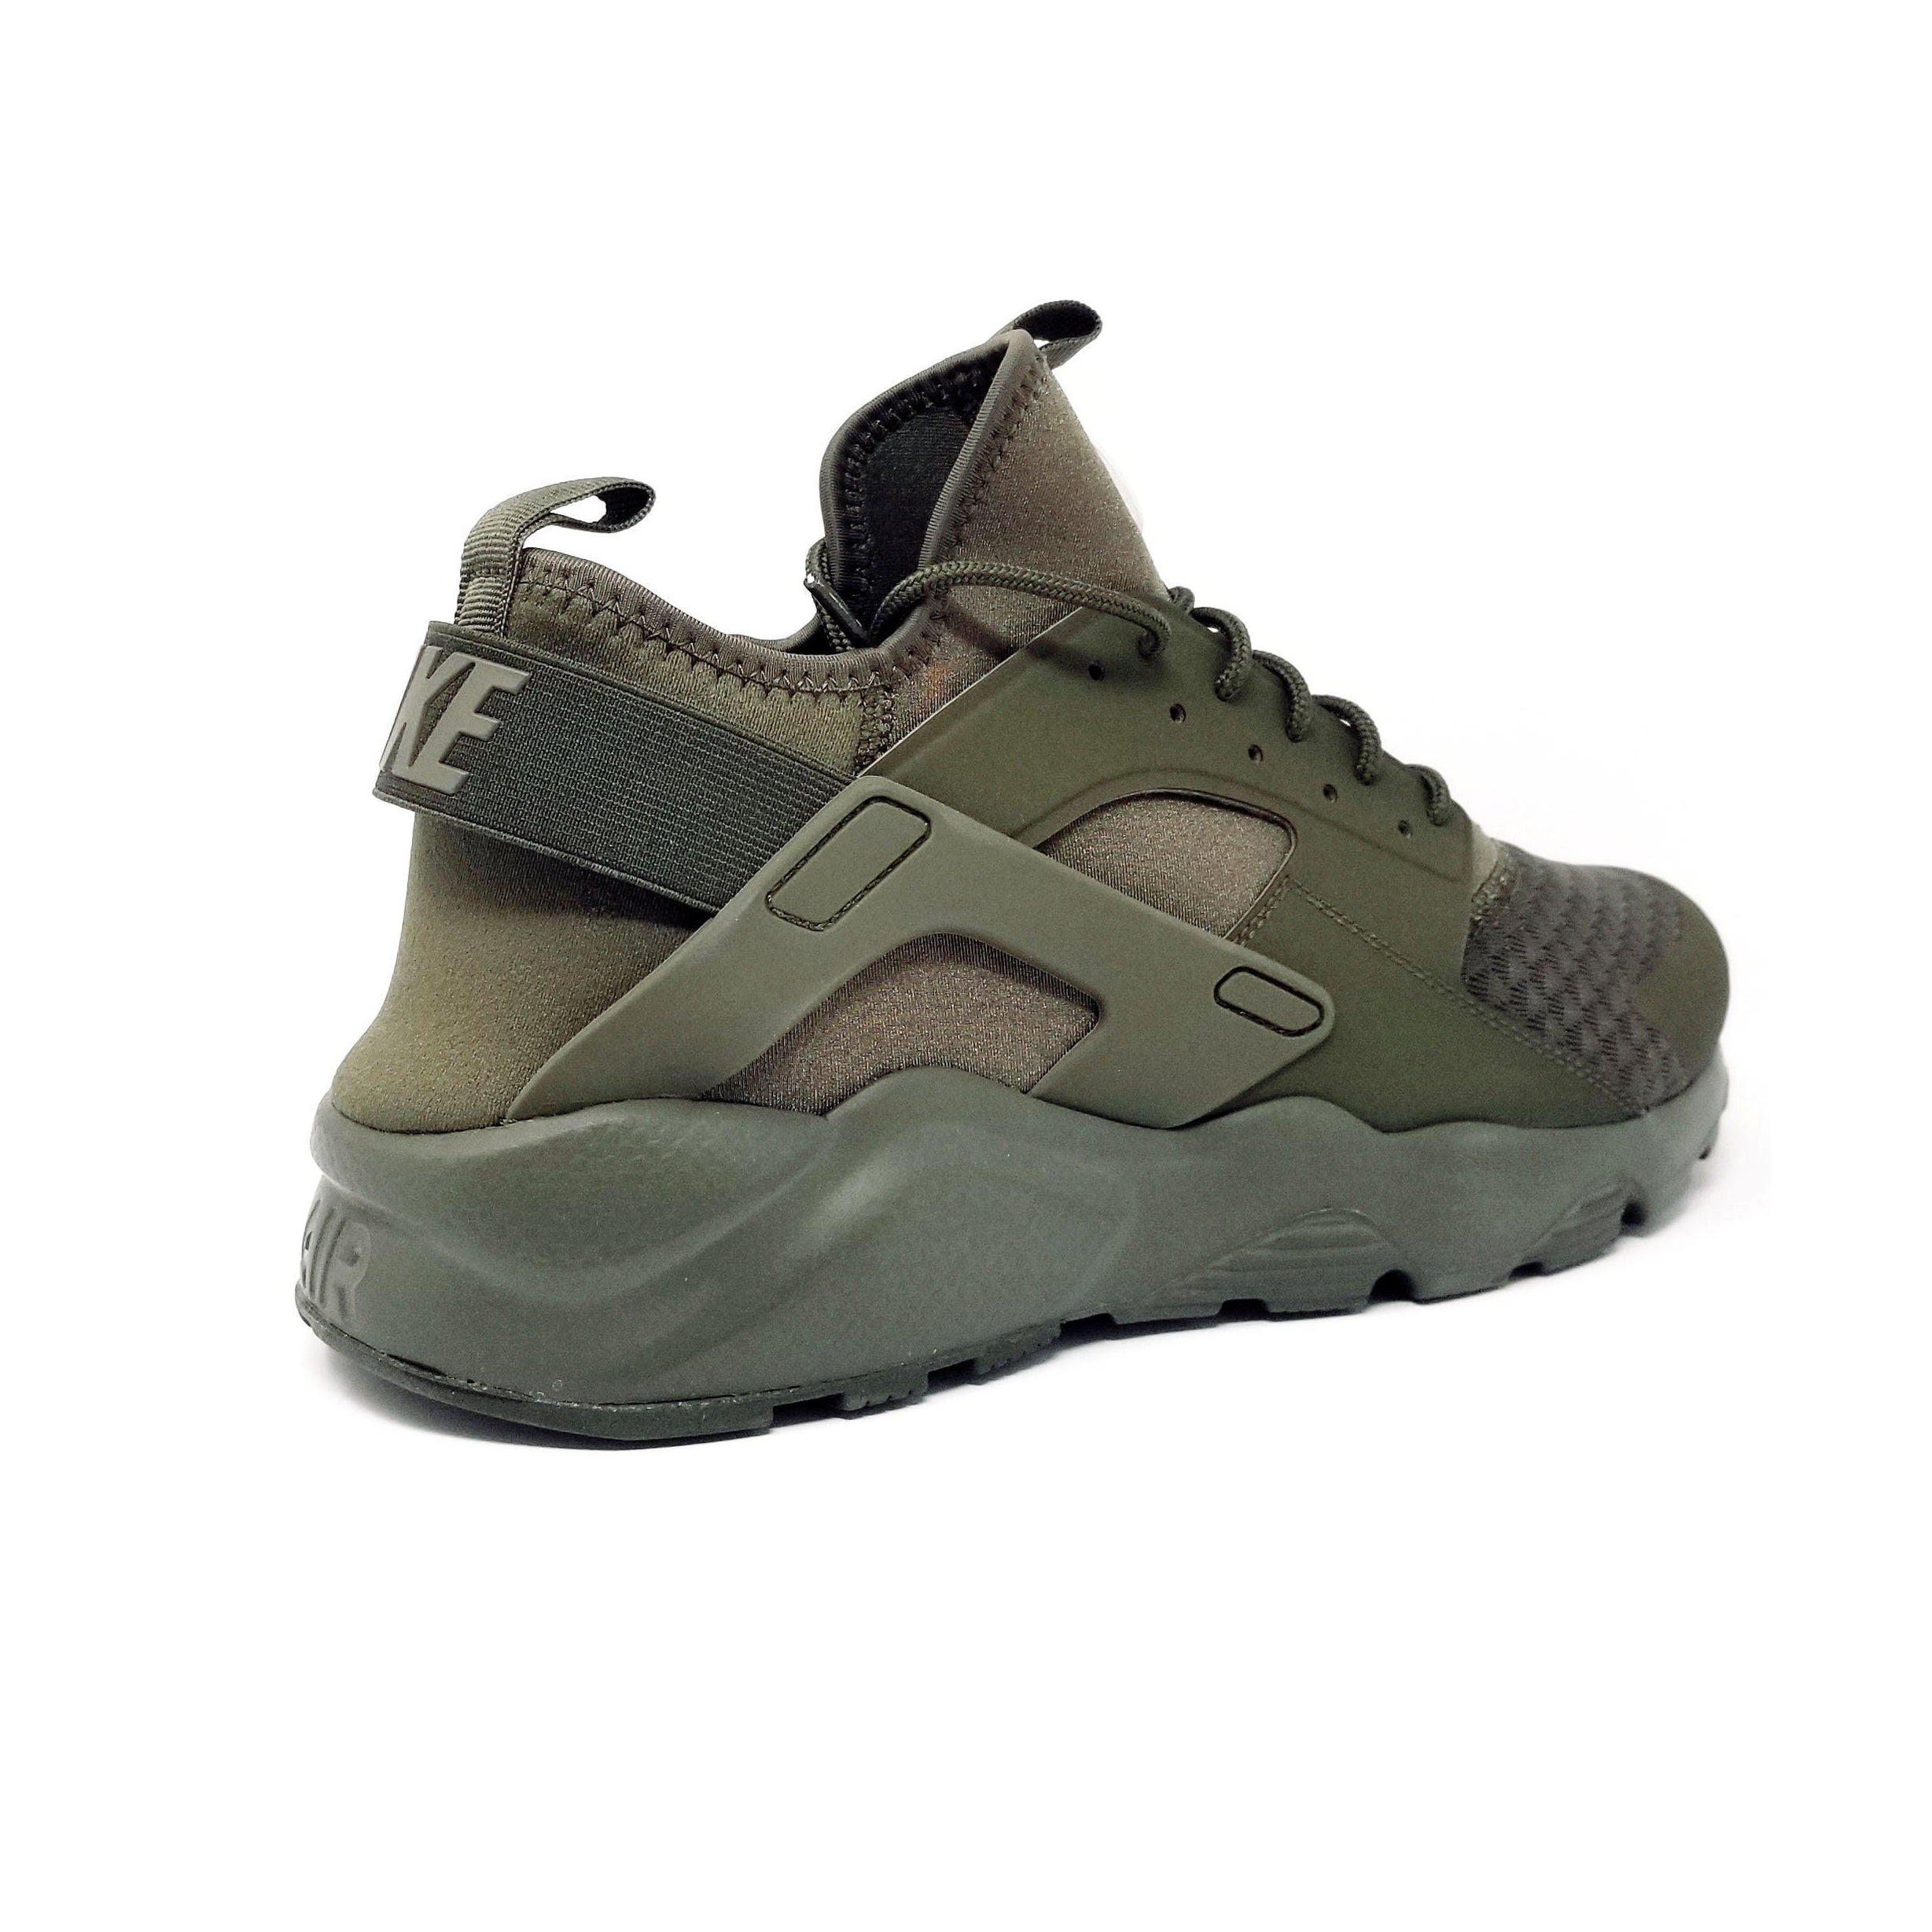 7e7fa6495cc0 Nike Air Huarache Run Ultra